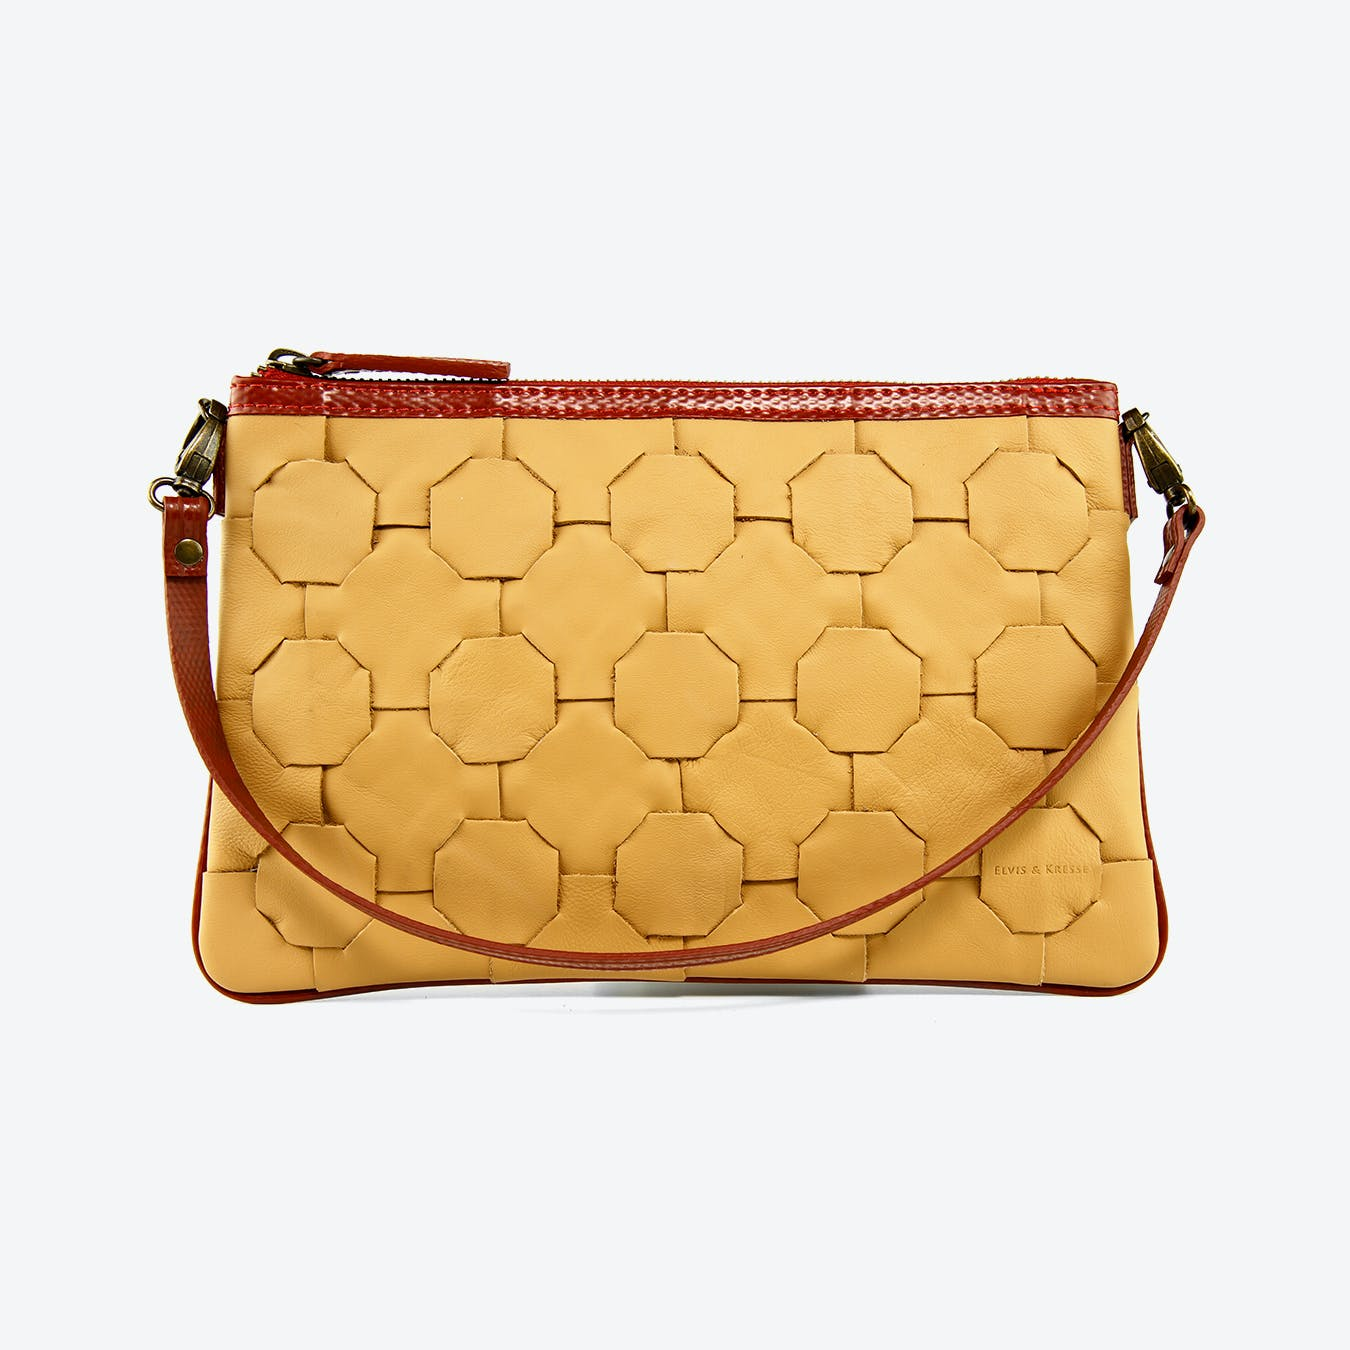 Fire & Hide Clutch Bag in Tan Burberry Leather